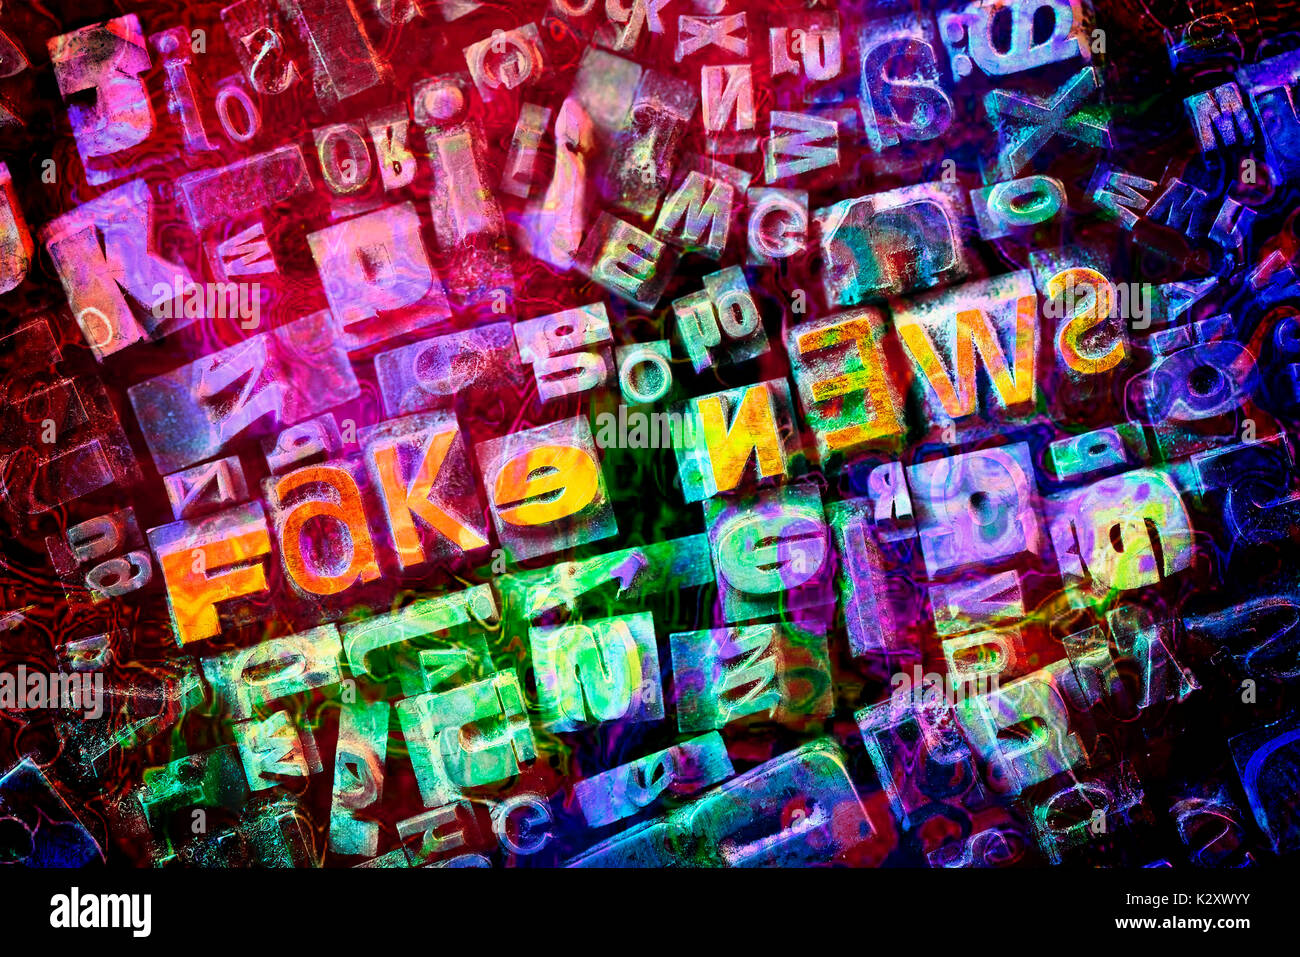 """Stroke """"Fake of news"""" from characters of lead"", ""Schriftzug """"Fake News"""" aus Bleilettern"" Stock Photo"